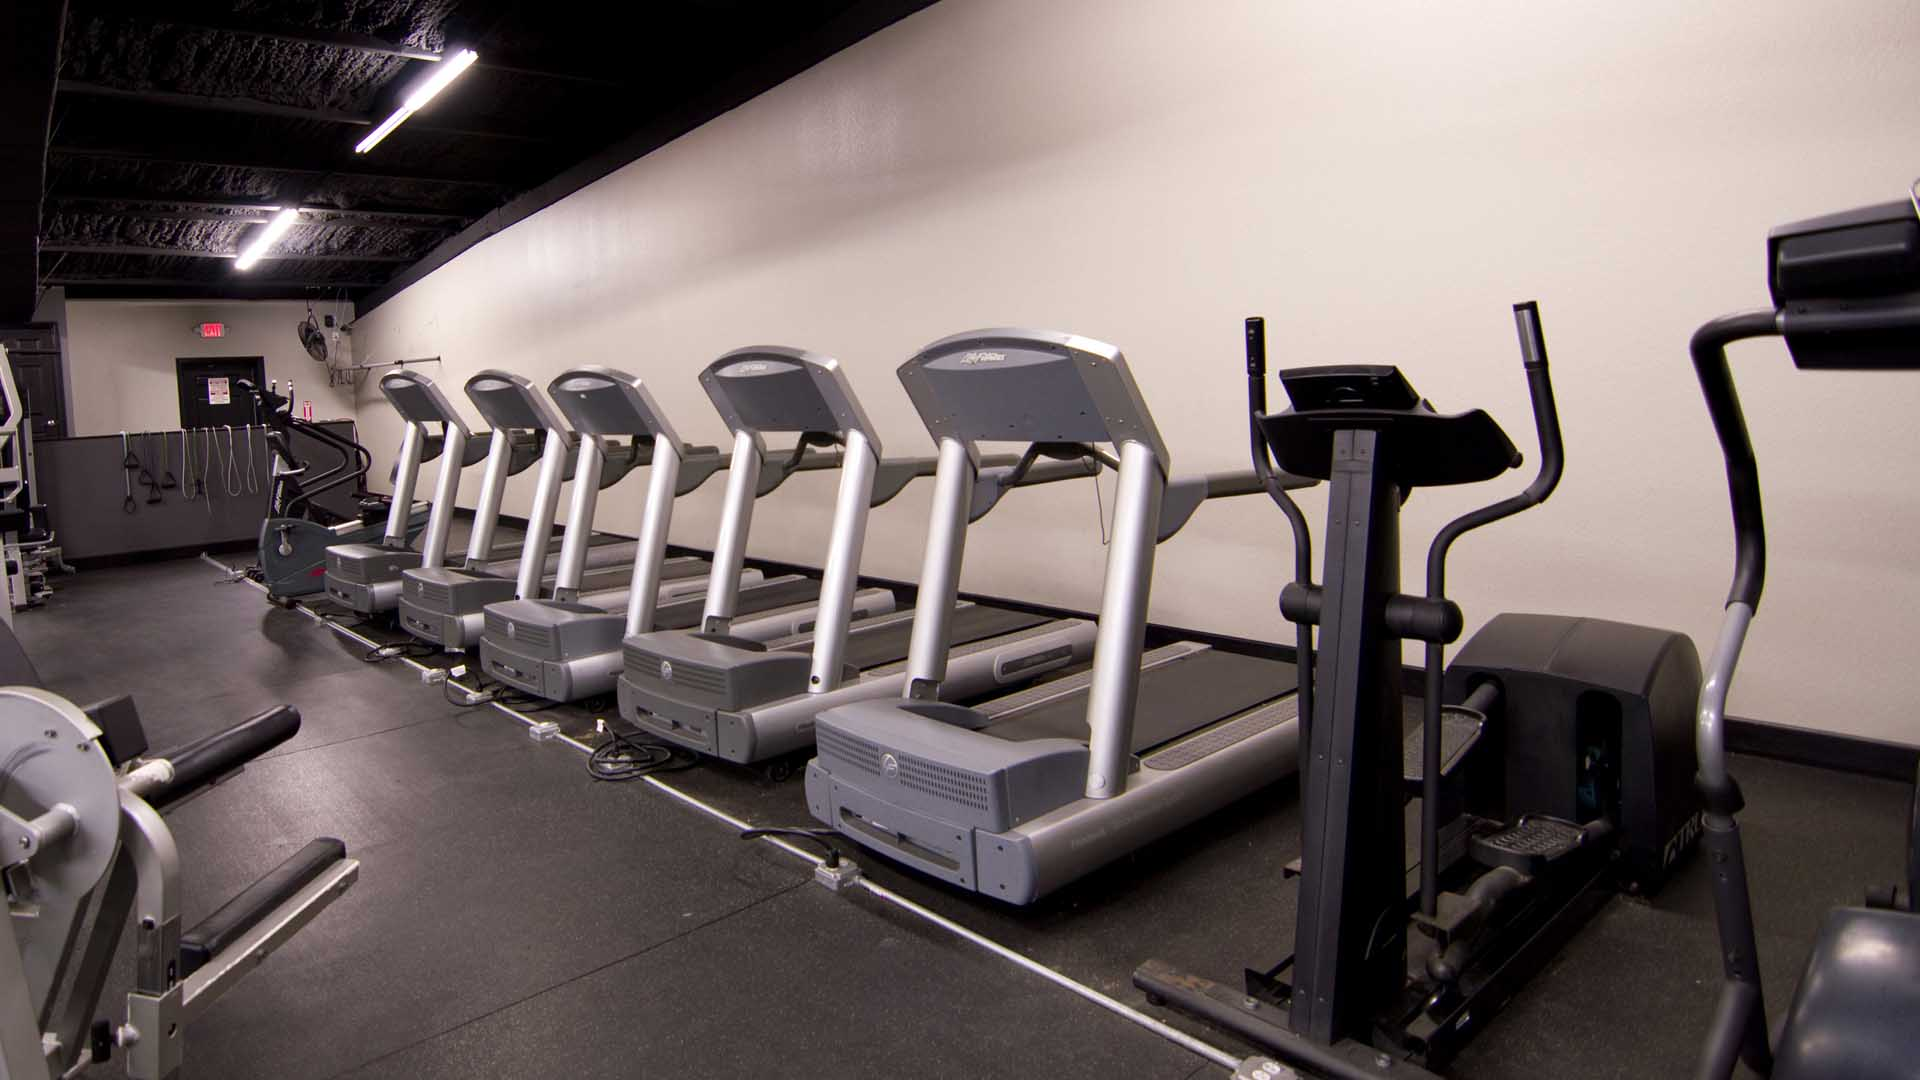 Looking down a line of Life Fitness treadmills and Precor ellipticals in the cardio area of the gym.